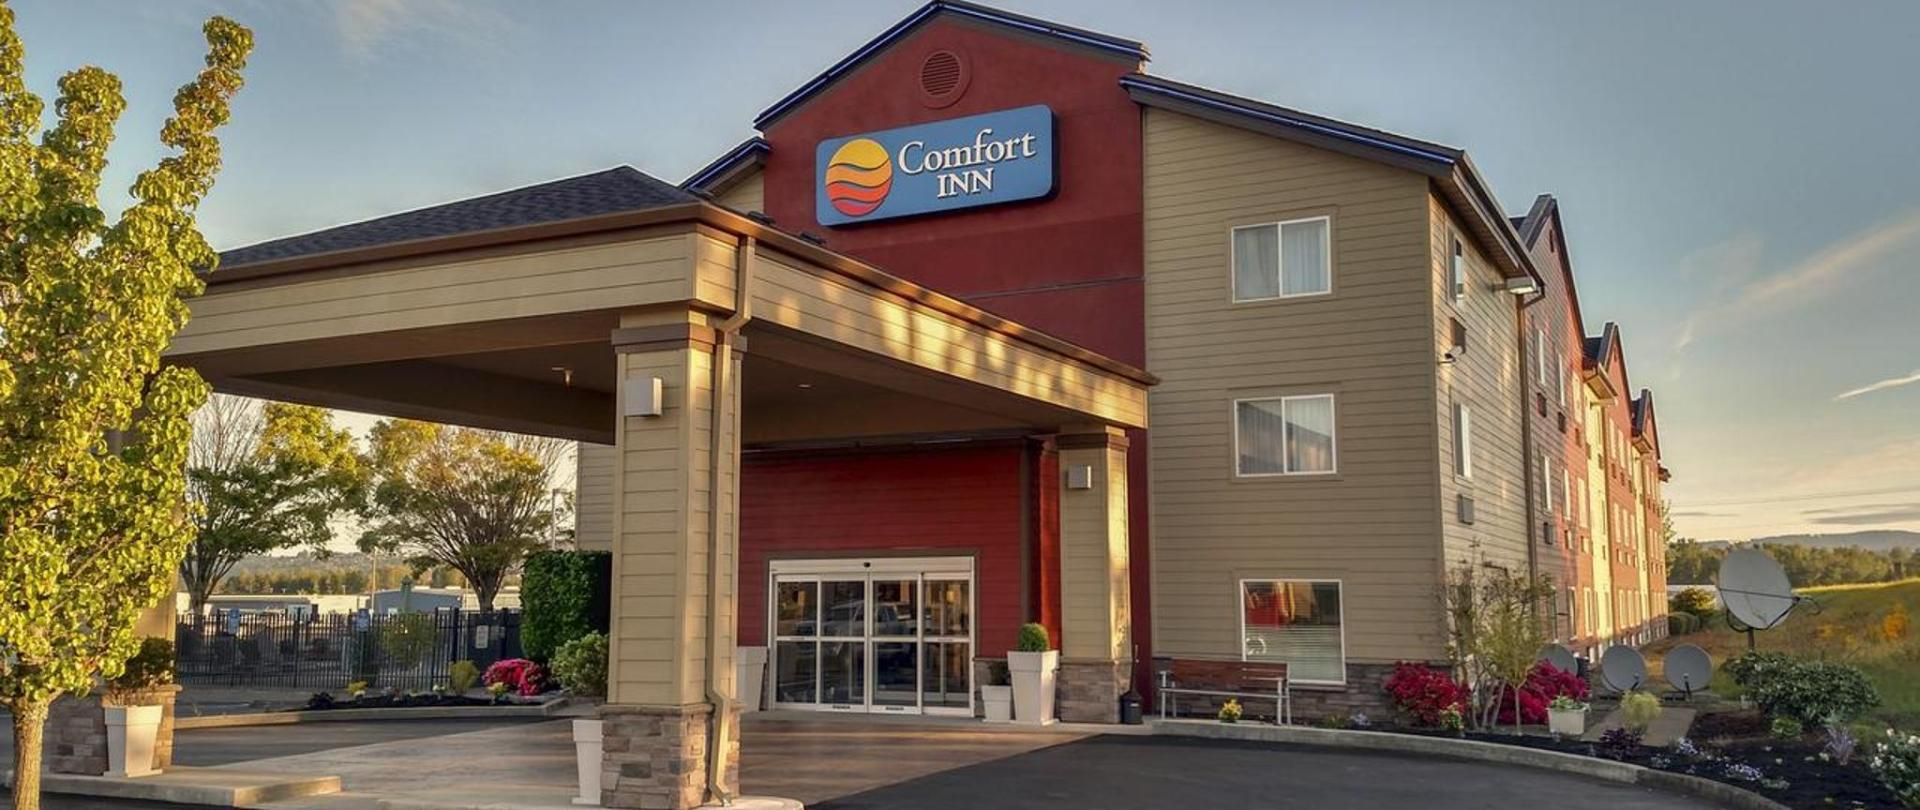 Comfort Inn Columbia Gorge Gateway Troutdale Or 503 492 2900